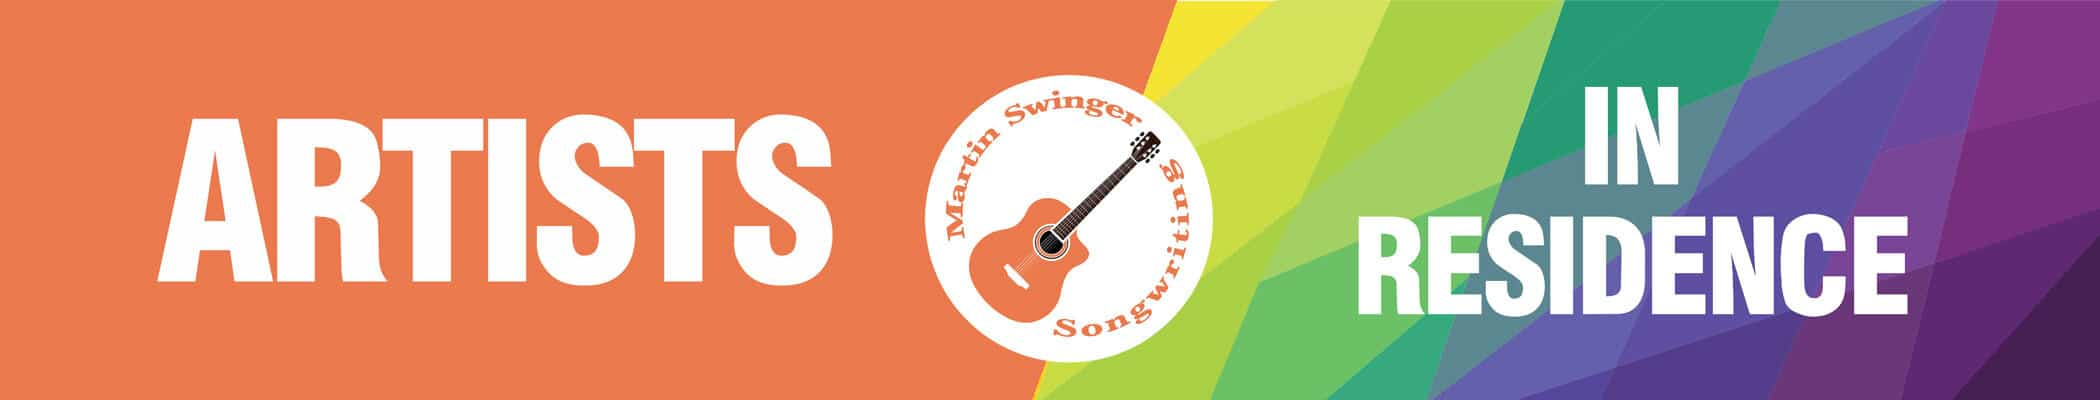 martin swinger songwriting artists in residence